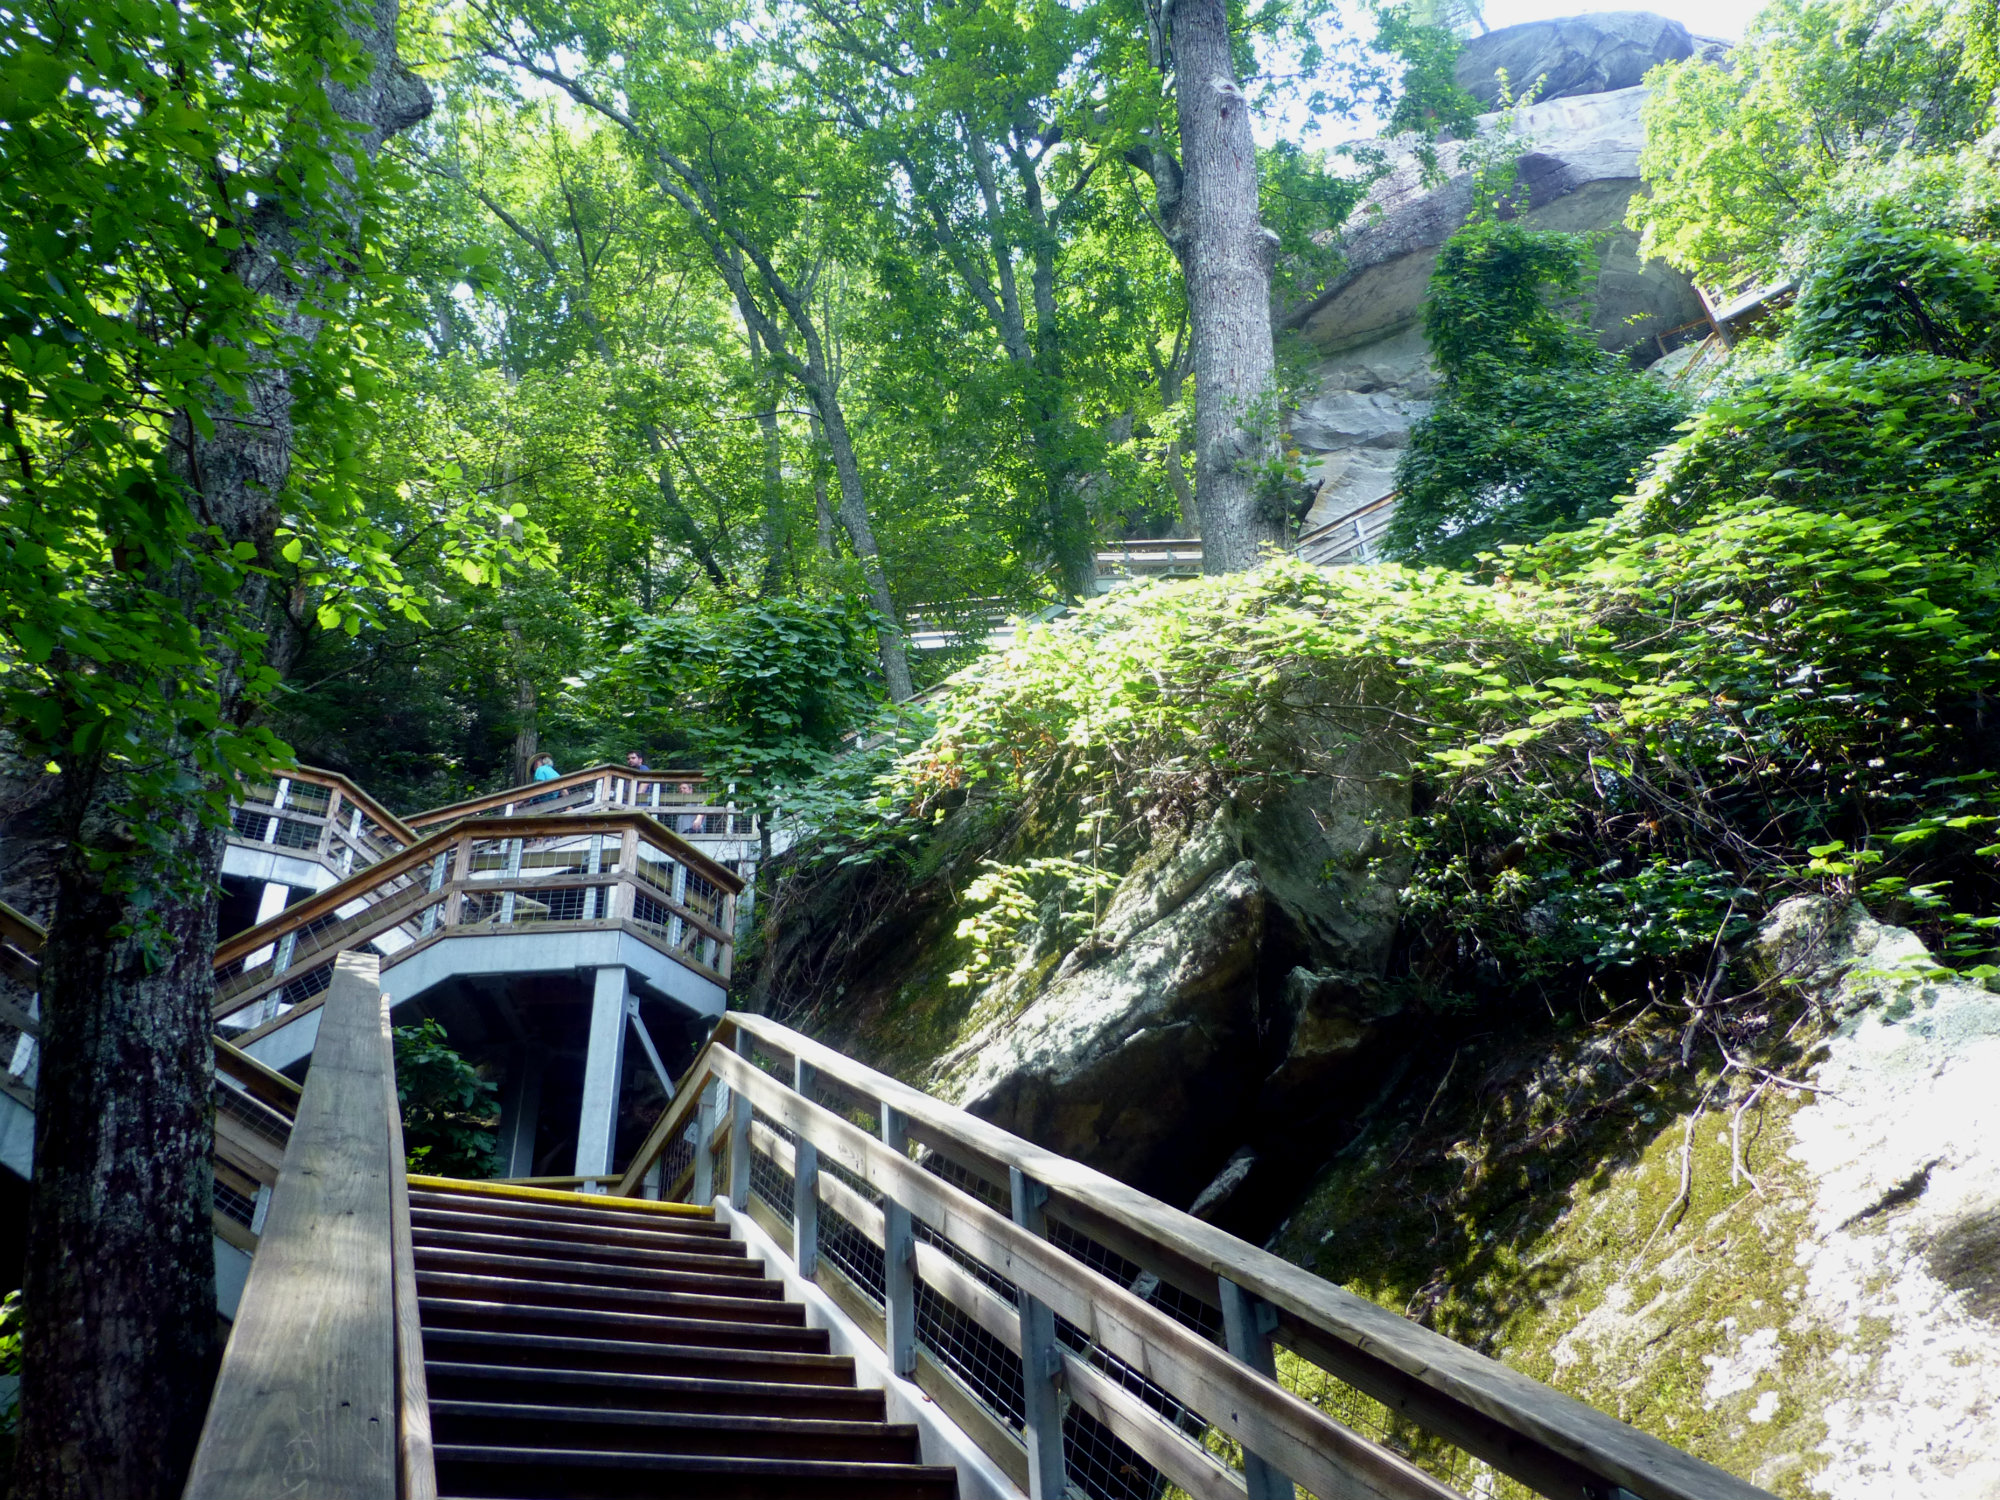 Set of well-constructed wooden steps leading through trees to the top of a granite rock tower